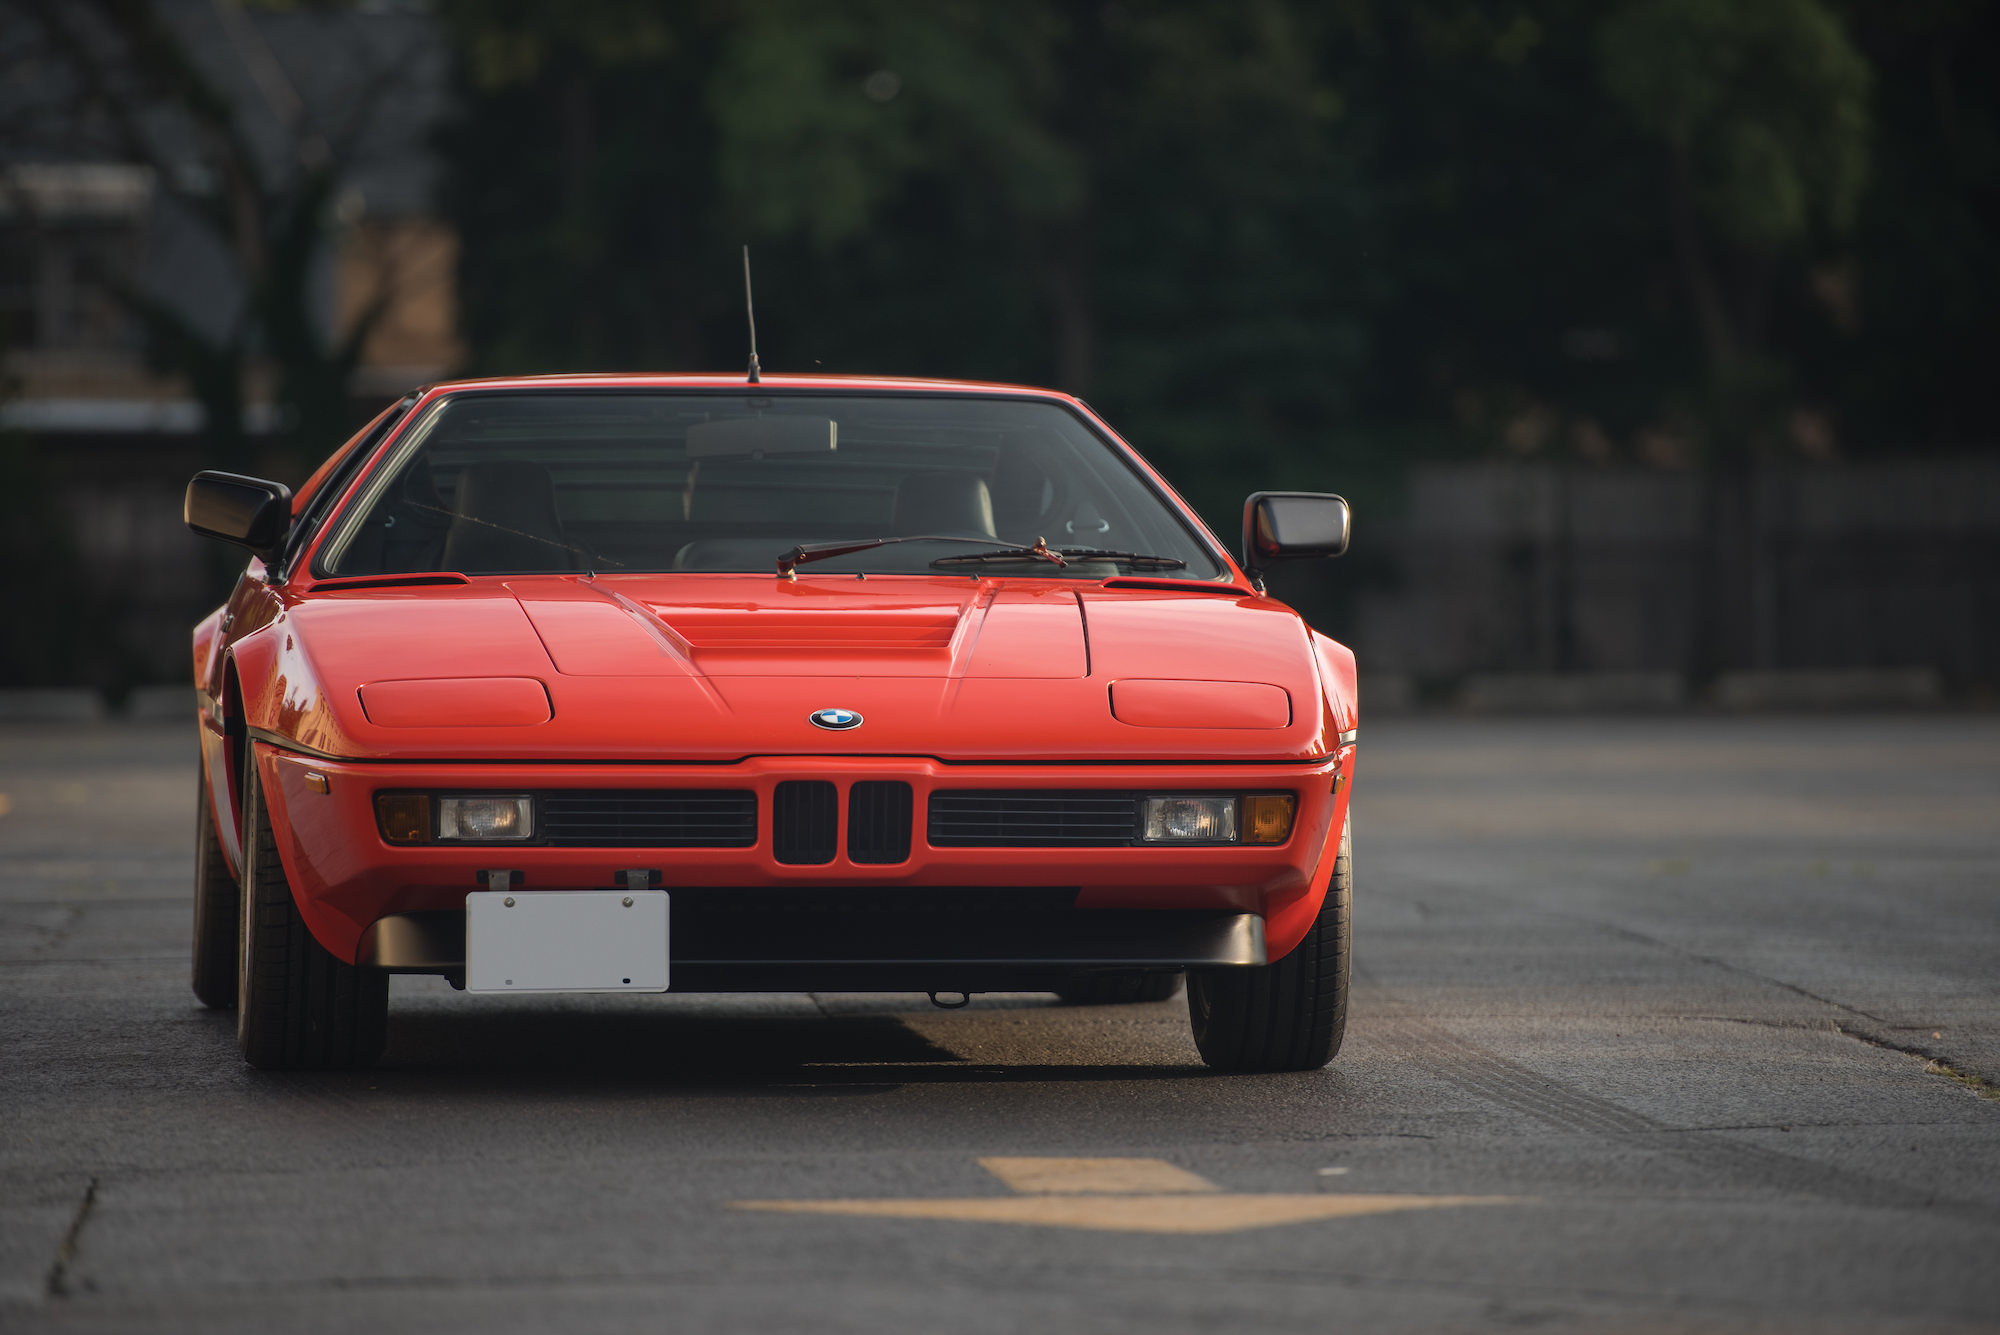 BMW M - 1981 bmw m1 for sale